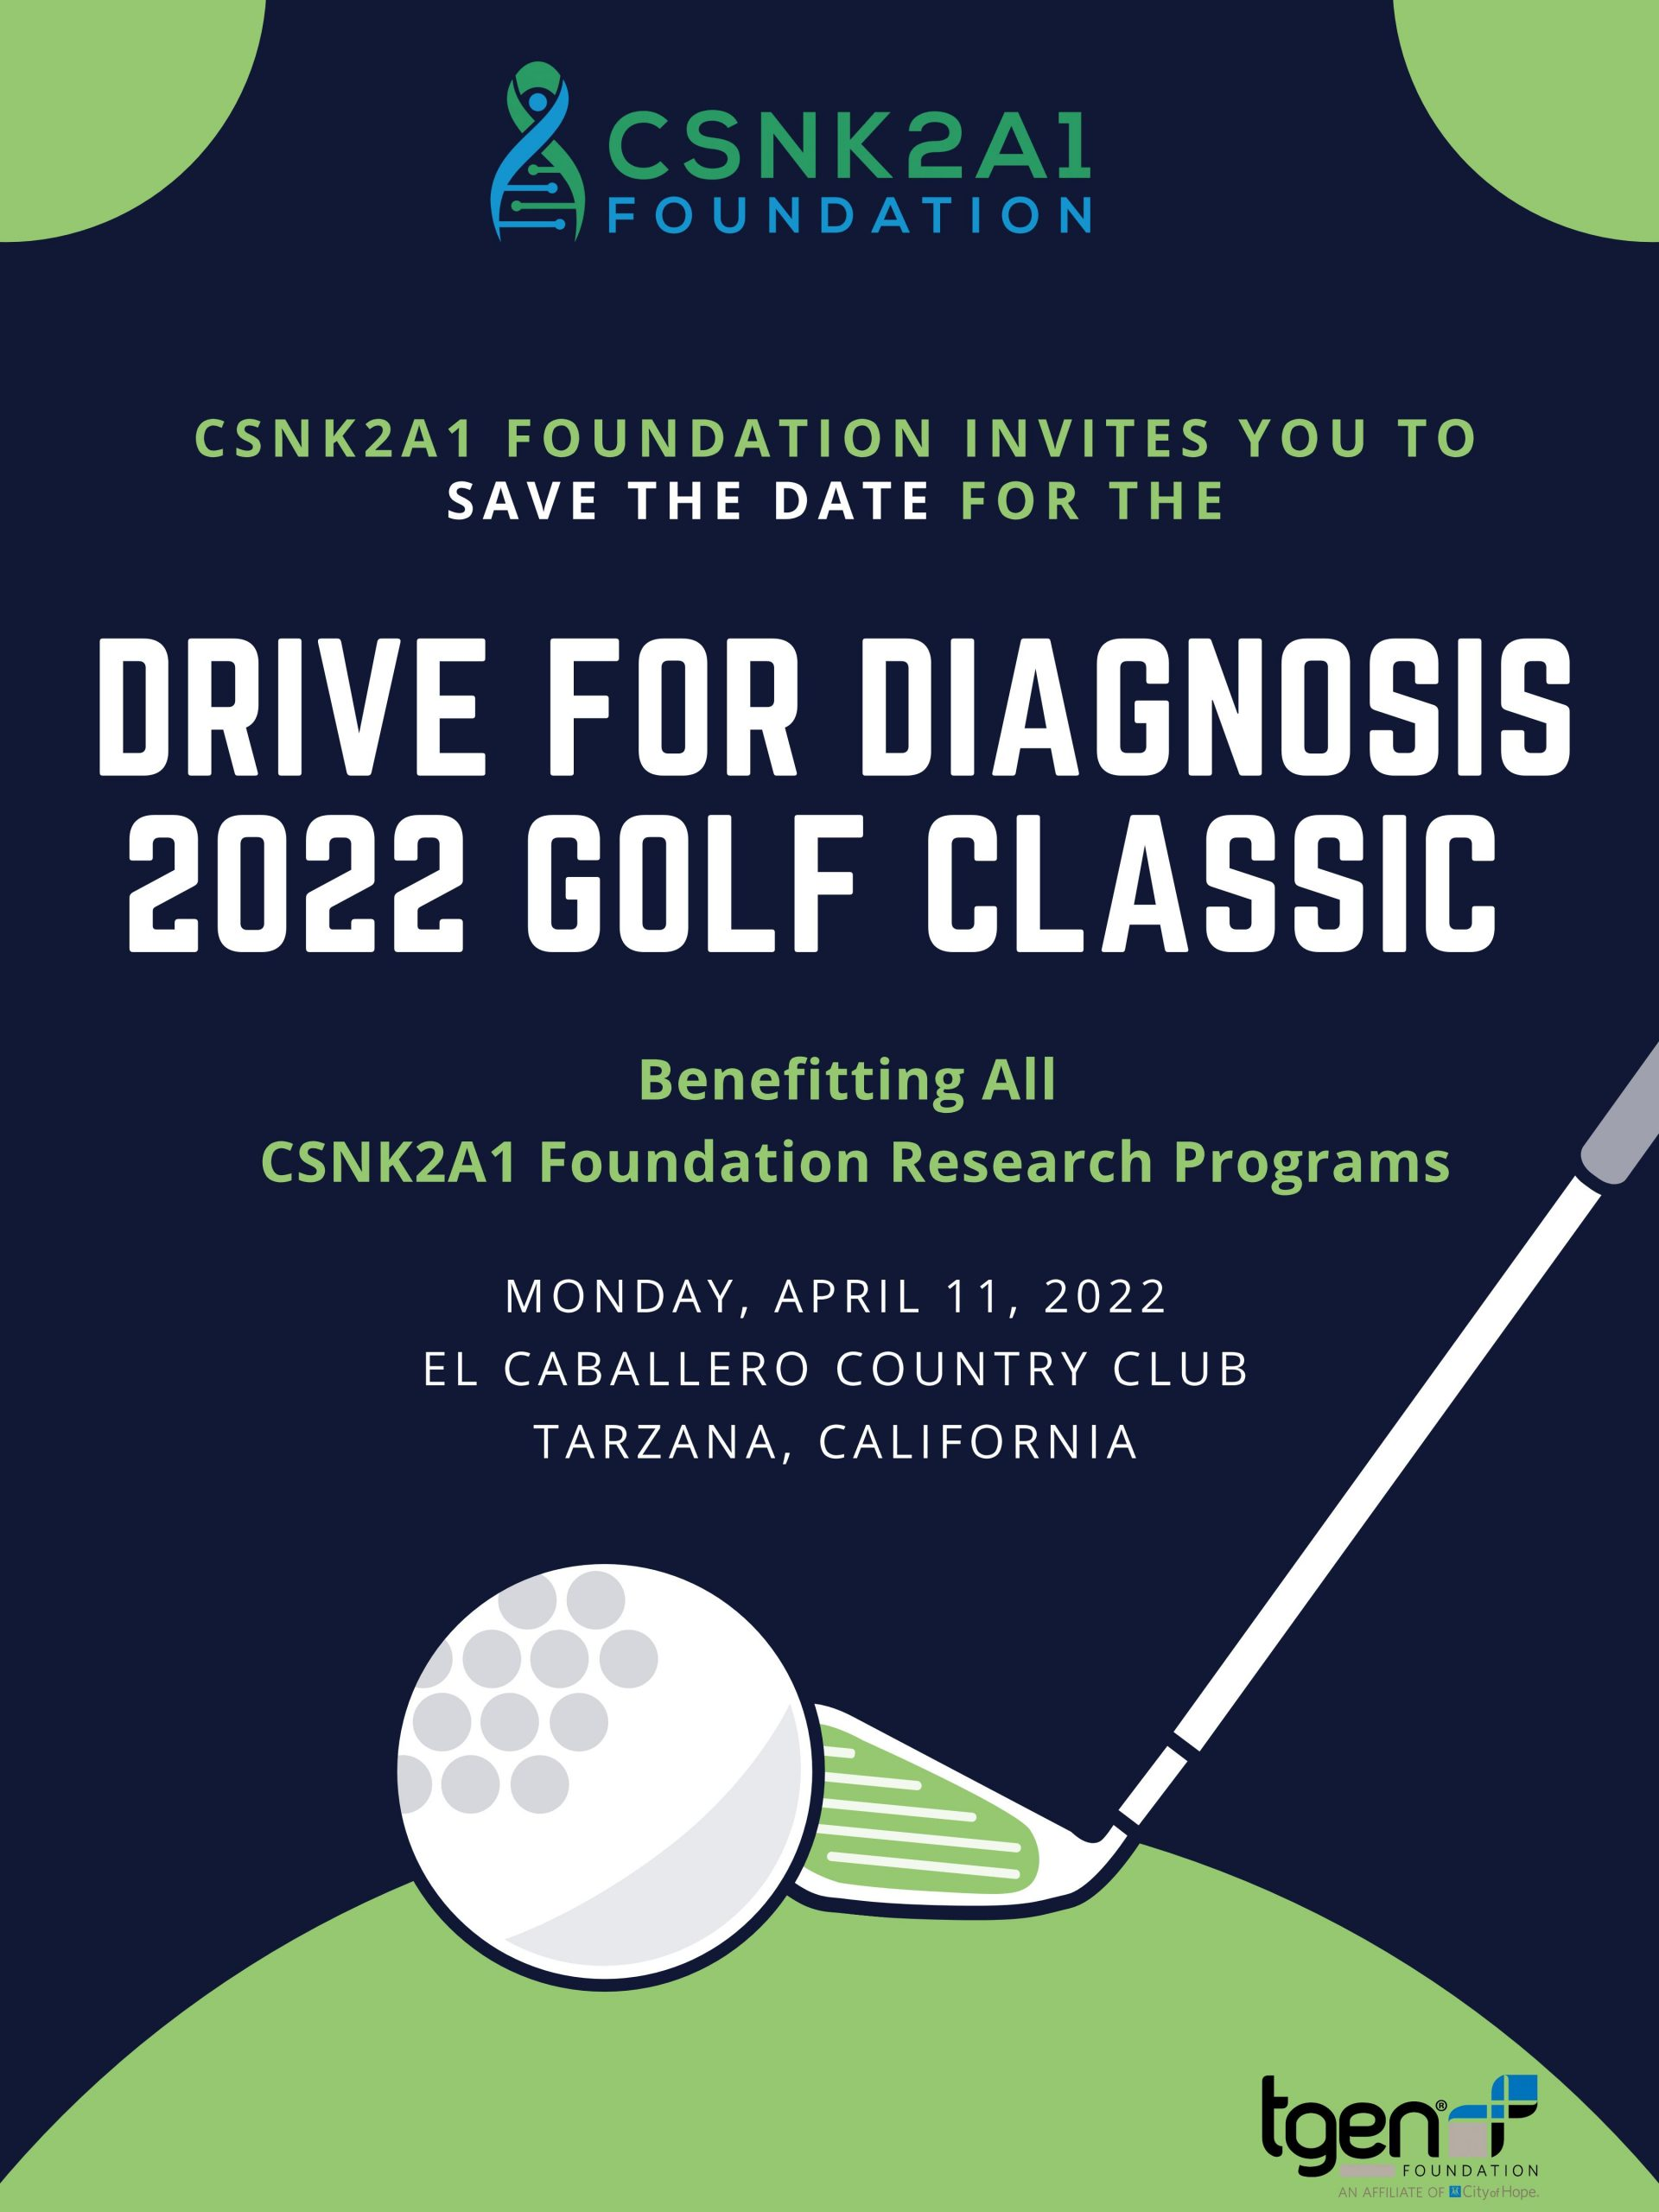 2022 Golf Classic Save the Date